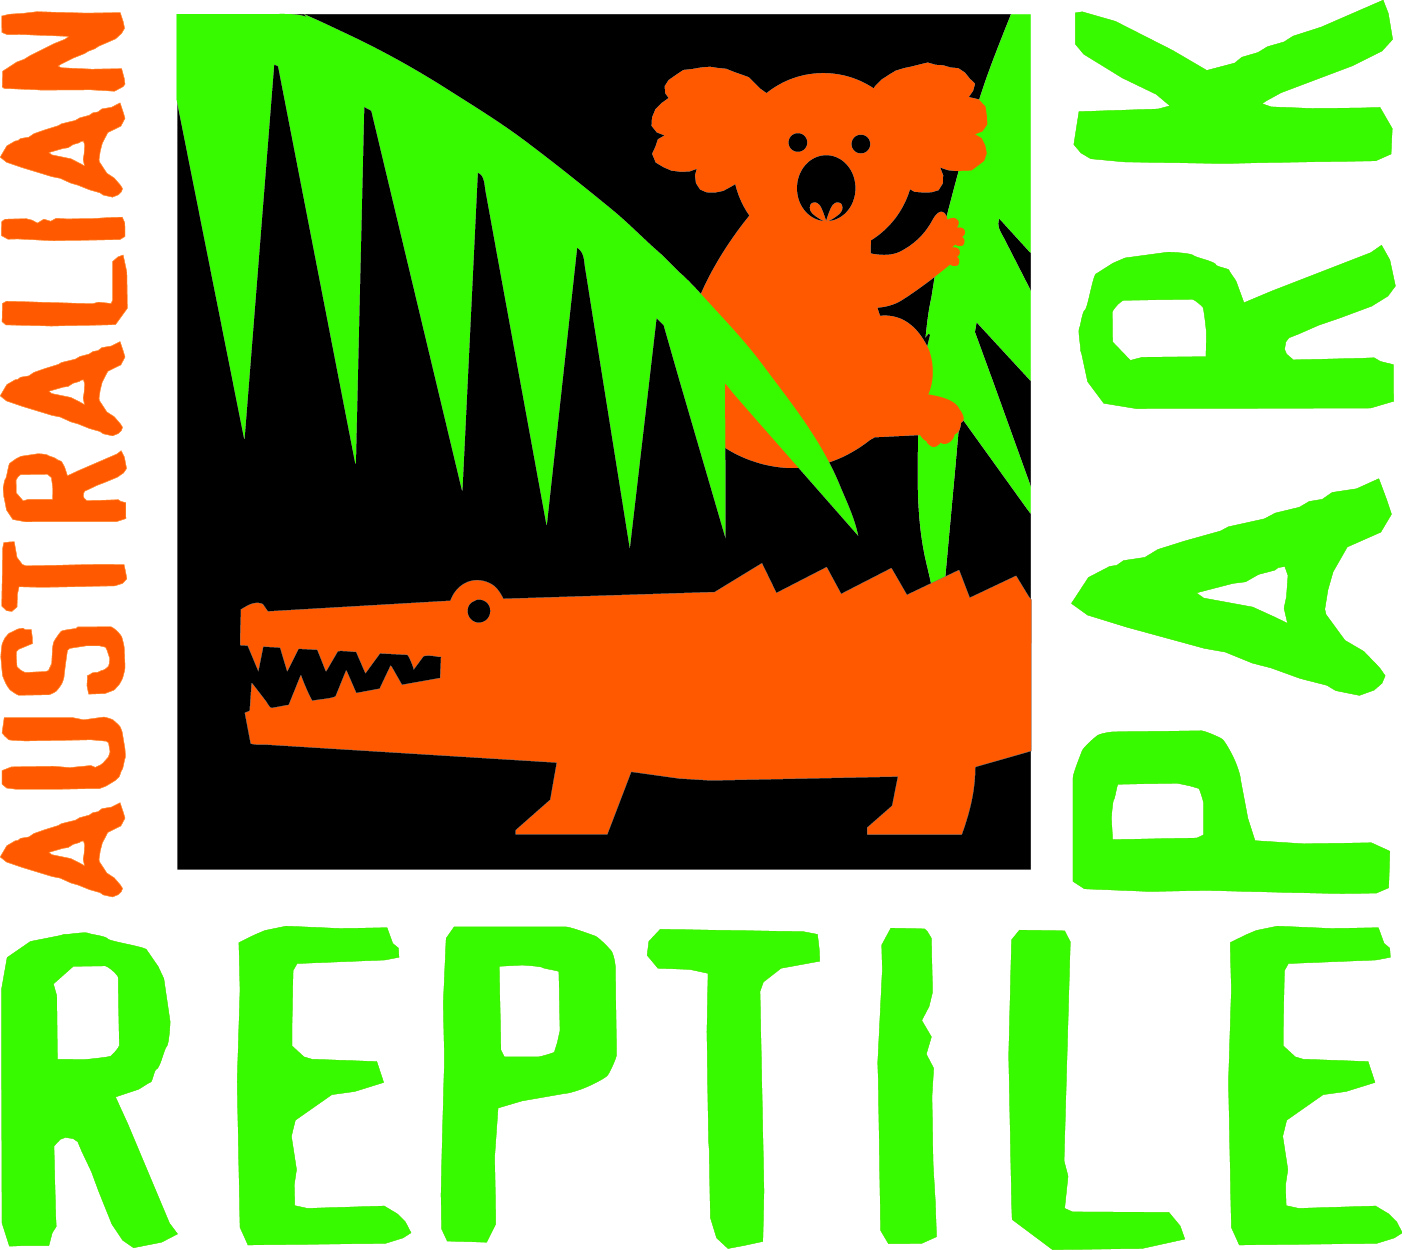 Australian Reptile Park - Find Attractions